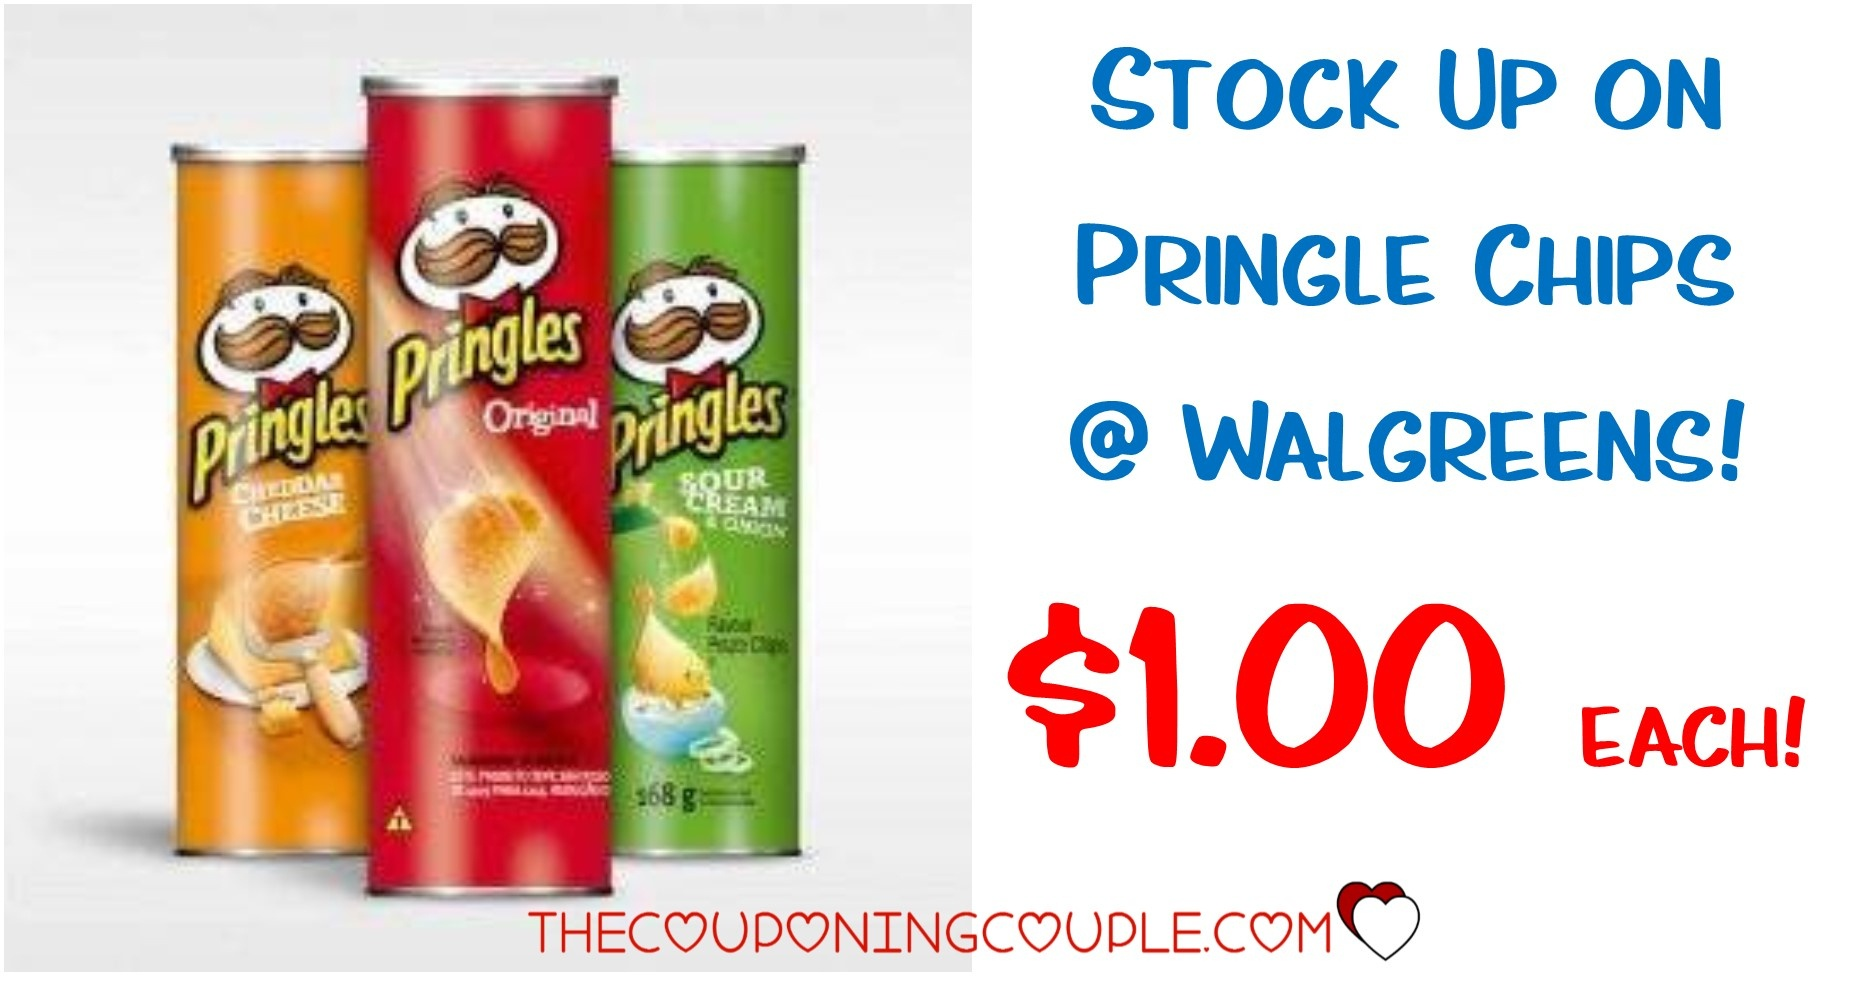 Pringles Canisters - Only $1 Each With Walgreens Deal! - Free Printable Pringles Coupons